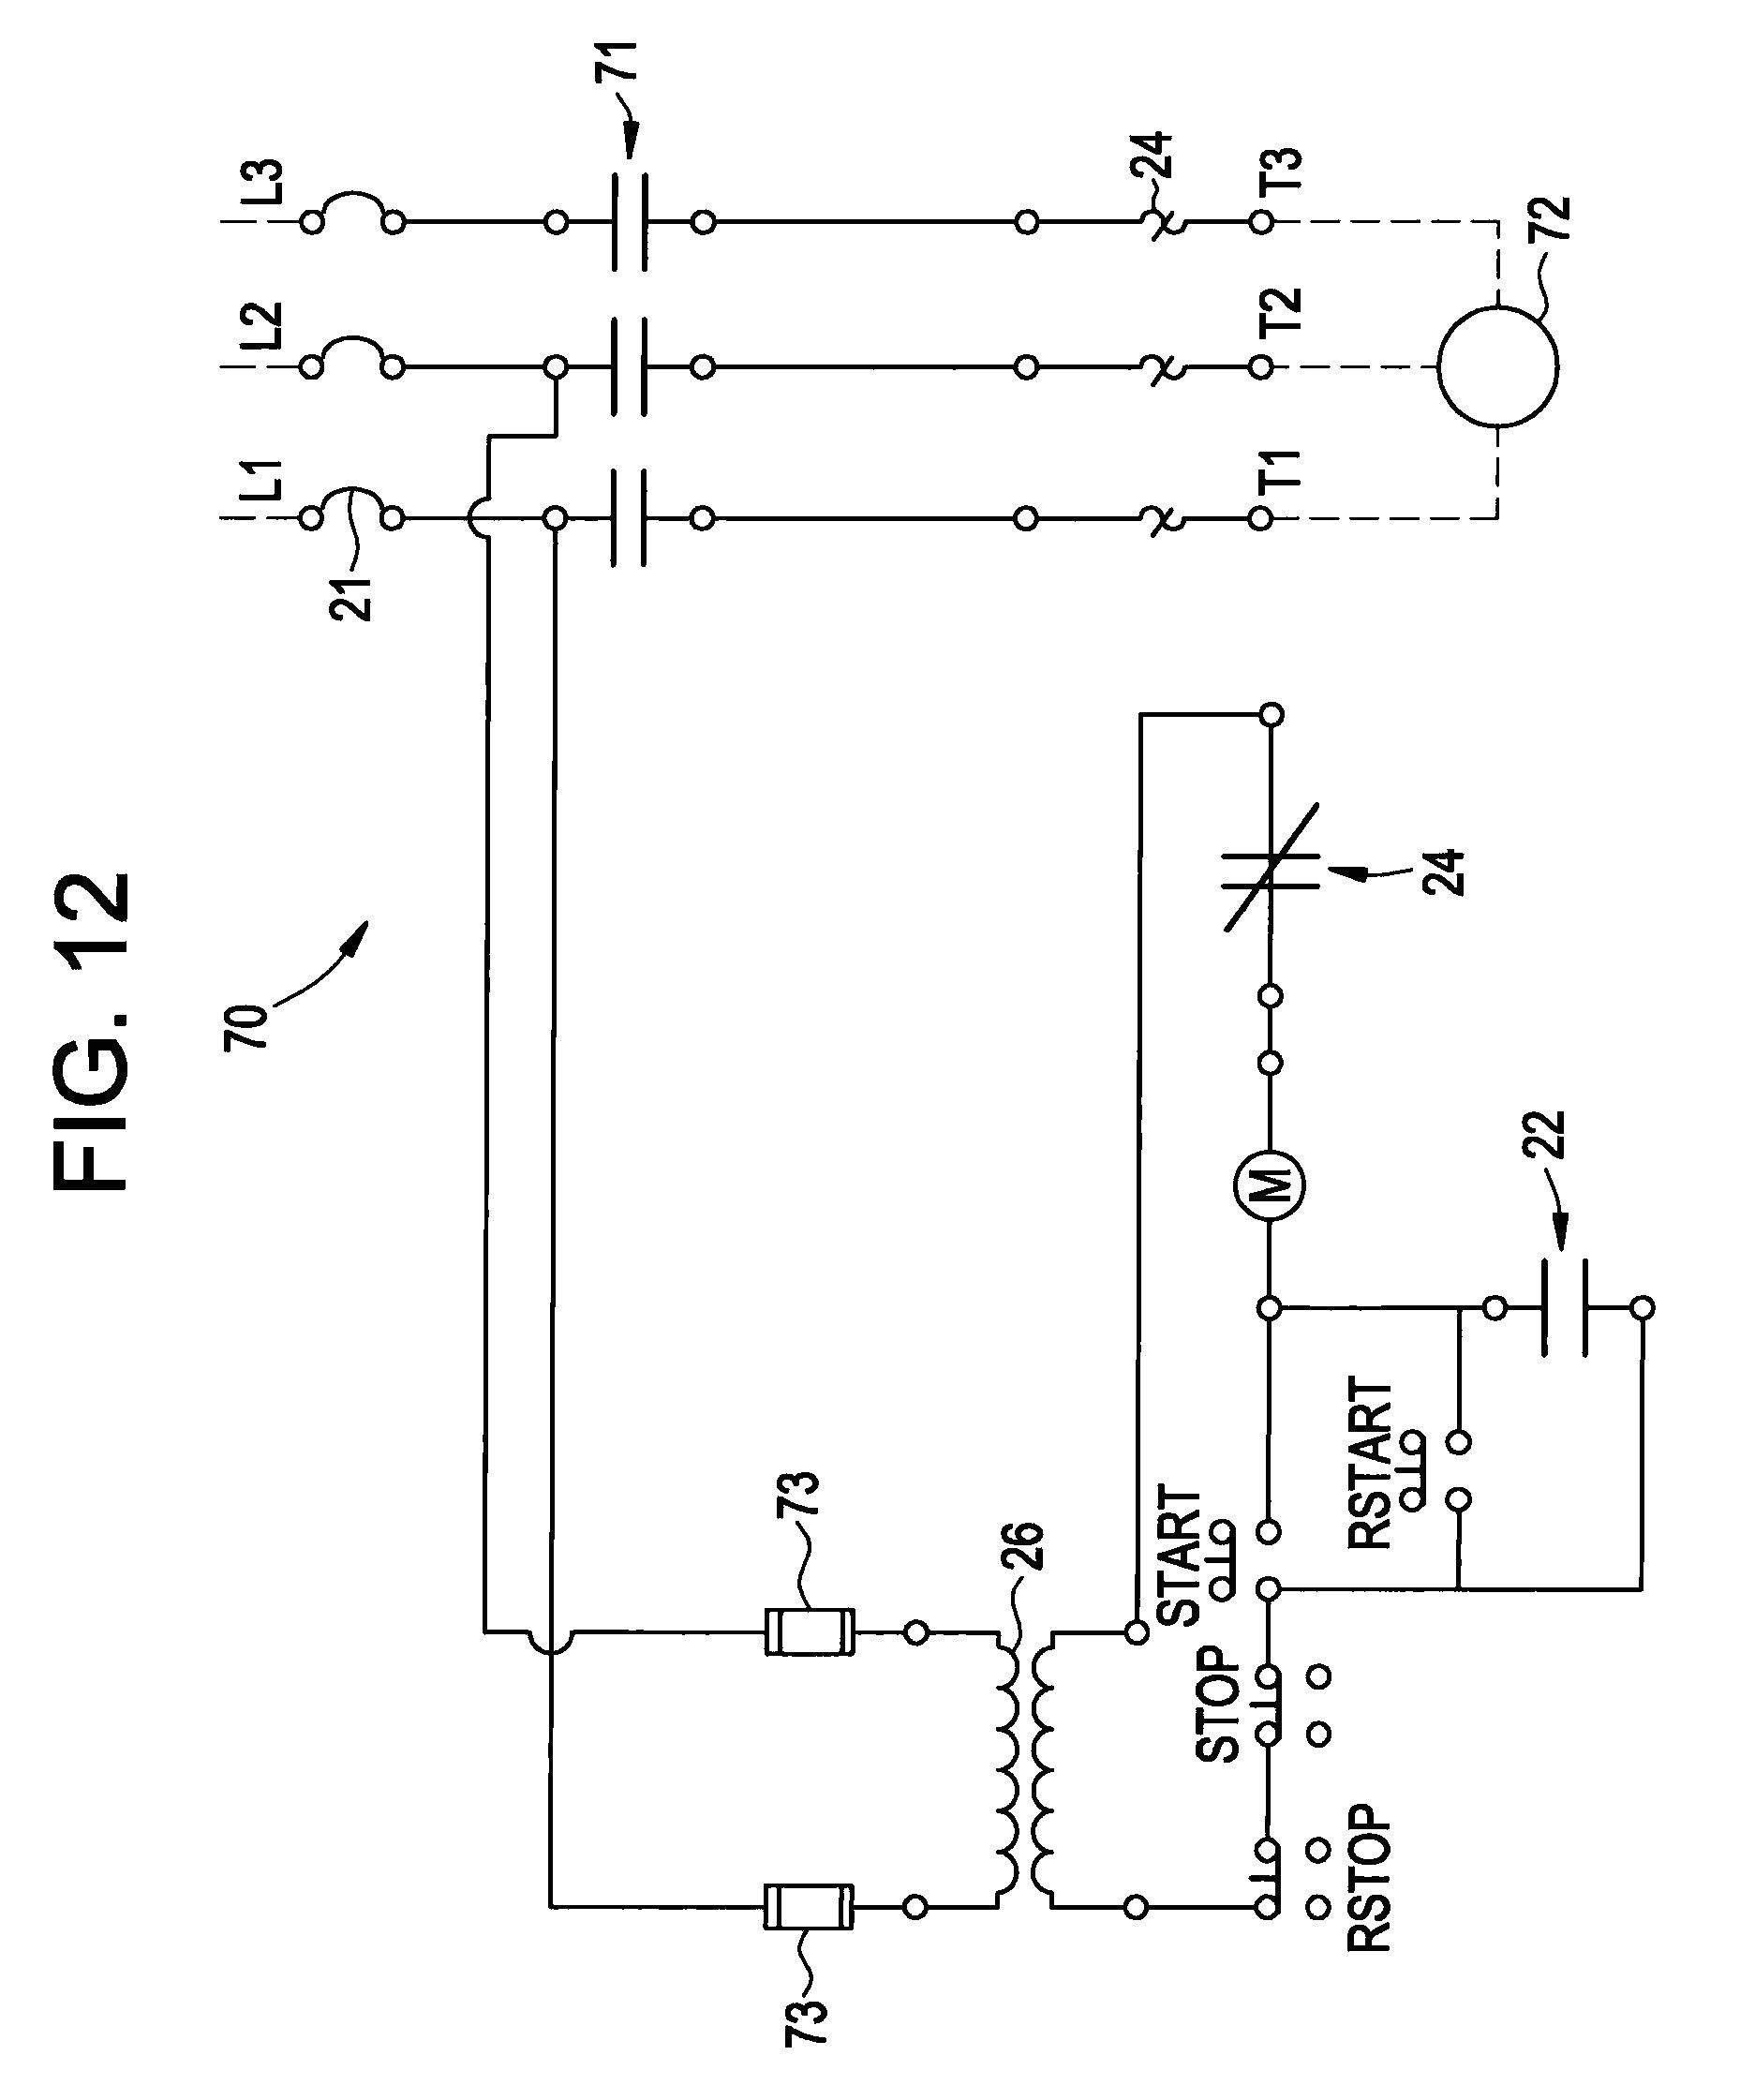 new wiring diagram for auto transformers diagram diagramtemplate diagramsample